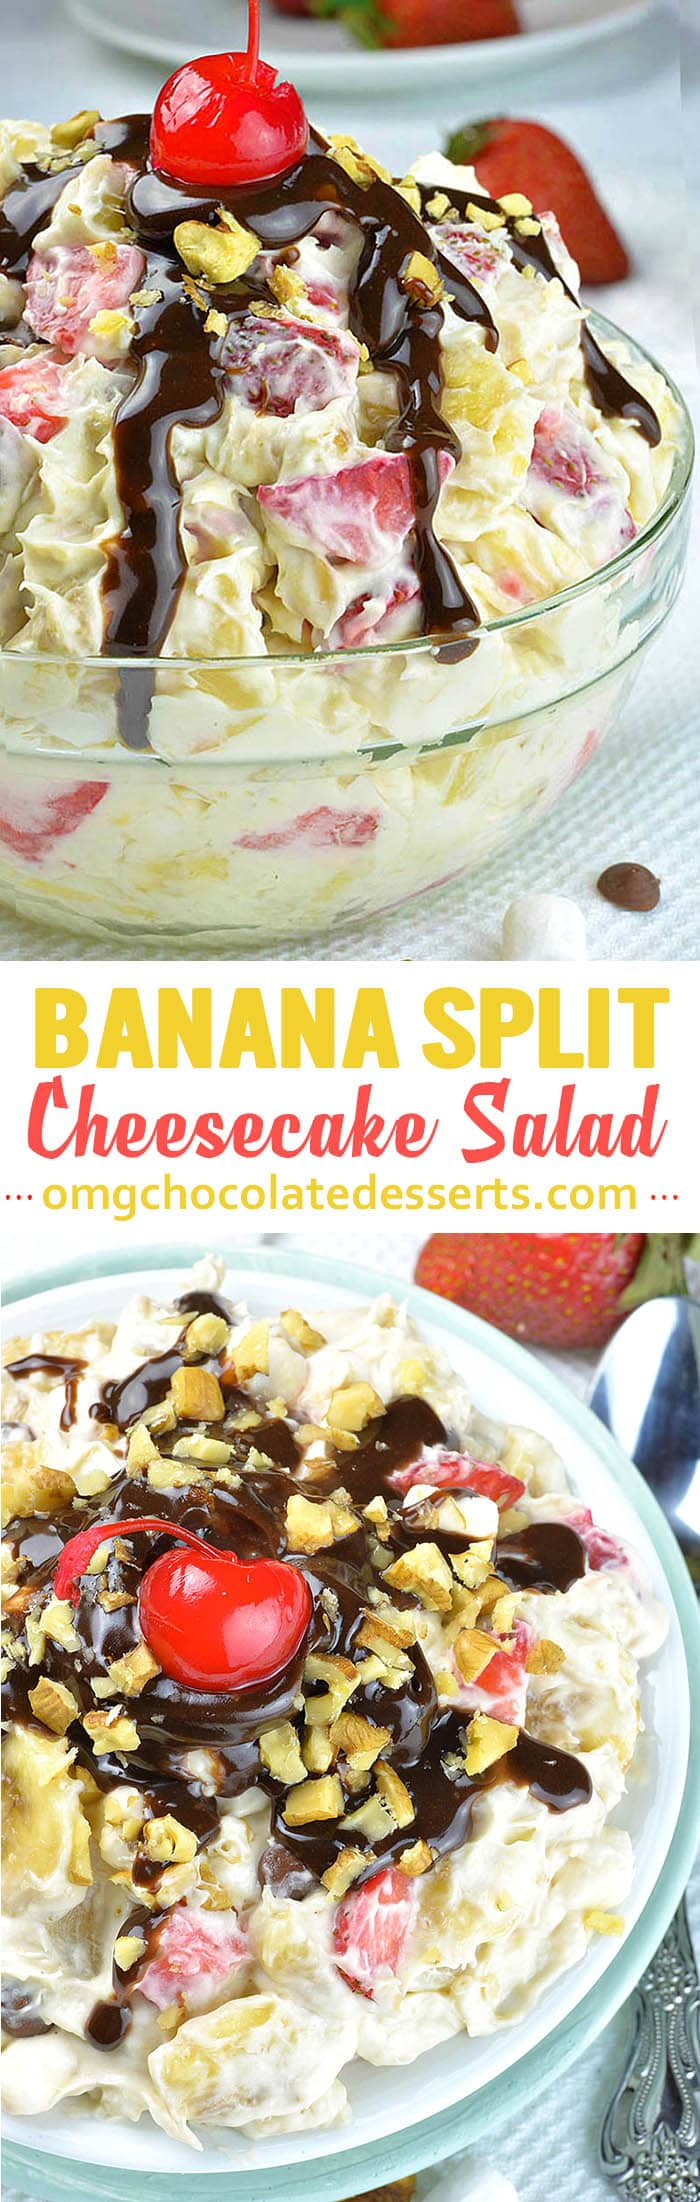 Banana Split Cheesecake Salad - Creamy vanilla pudding and whipped topping mixture loaded with bananas, fresh strawberriesand pineapple chunks is perfect way to trick your kids into eating some fresh fruits.